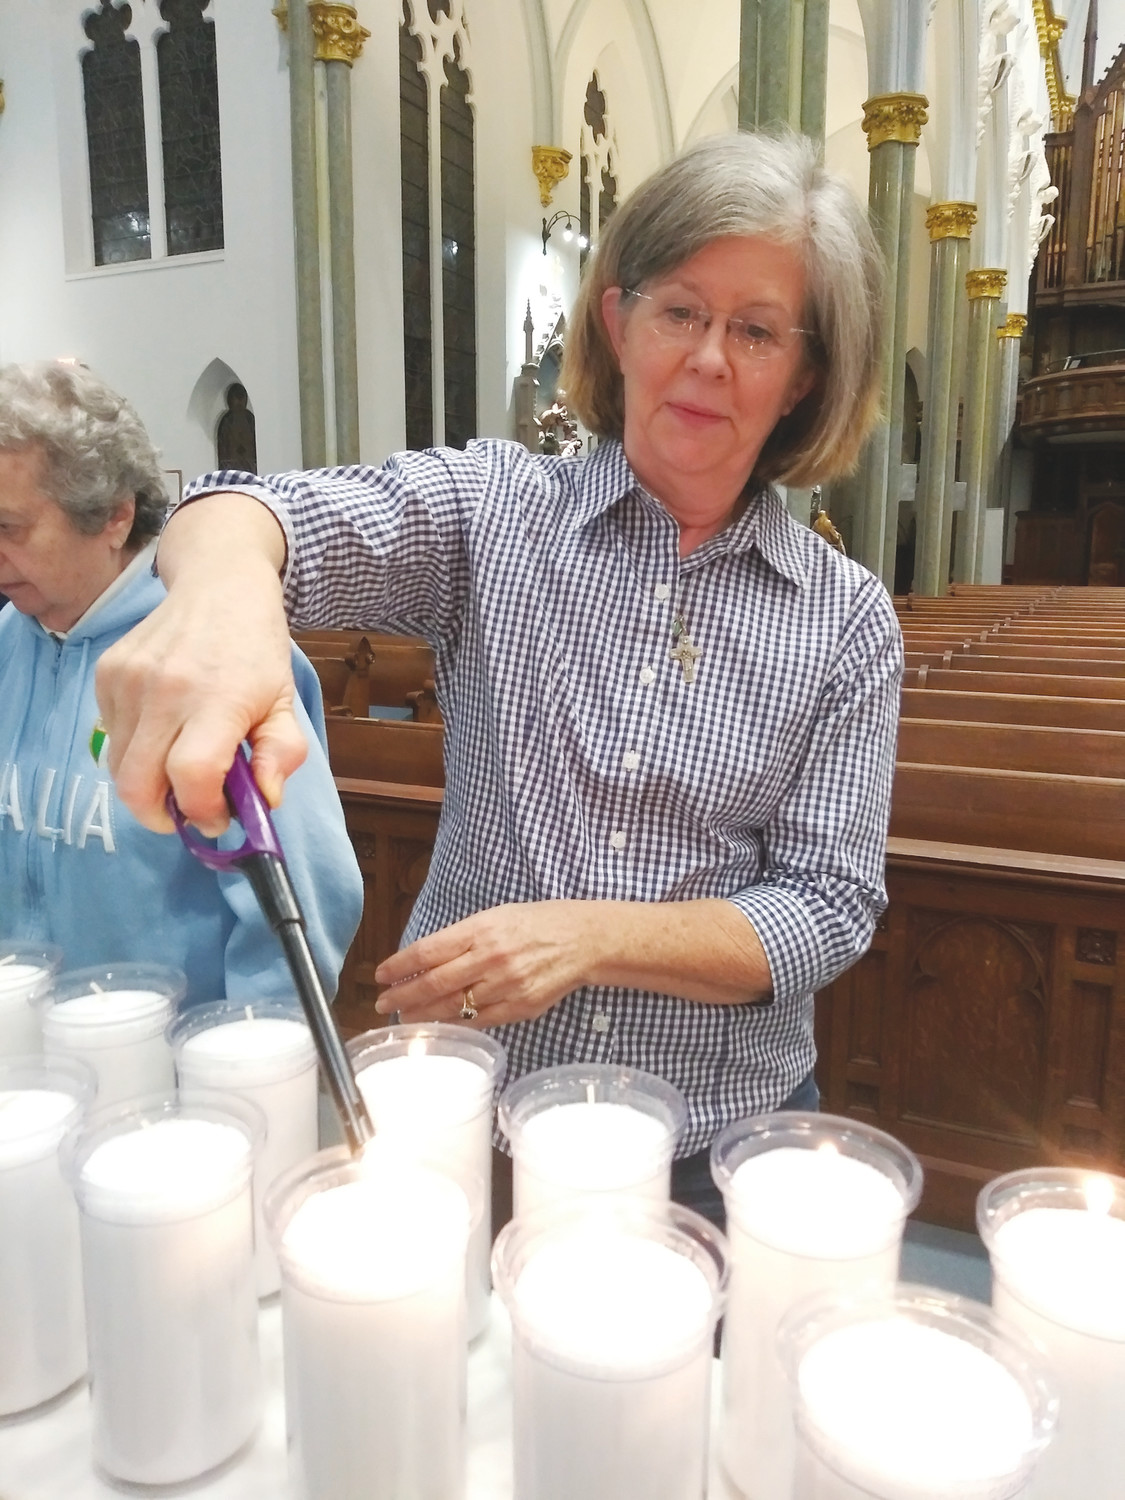 St. Catherine's Catholic Church parishioner, Martha Malone of Ortega, lights a candle Nov. 30 at the Basilica of the Immaculate Conception as part of the Cities of Light event to raise awareness about abolishing the death penalty.